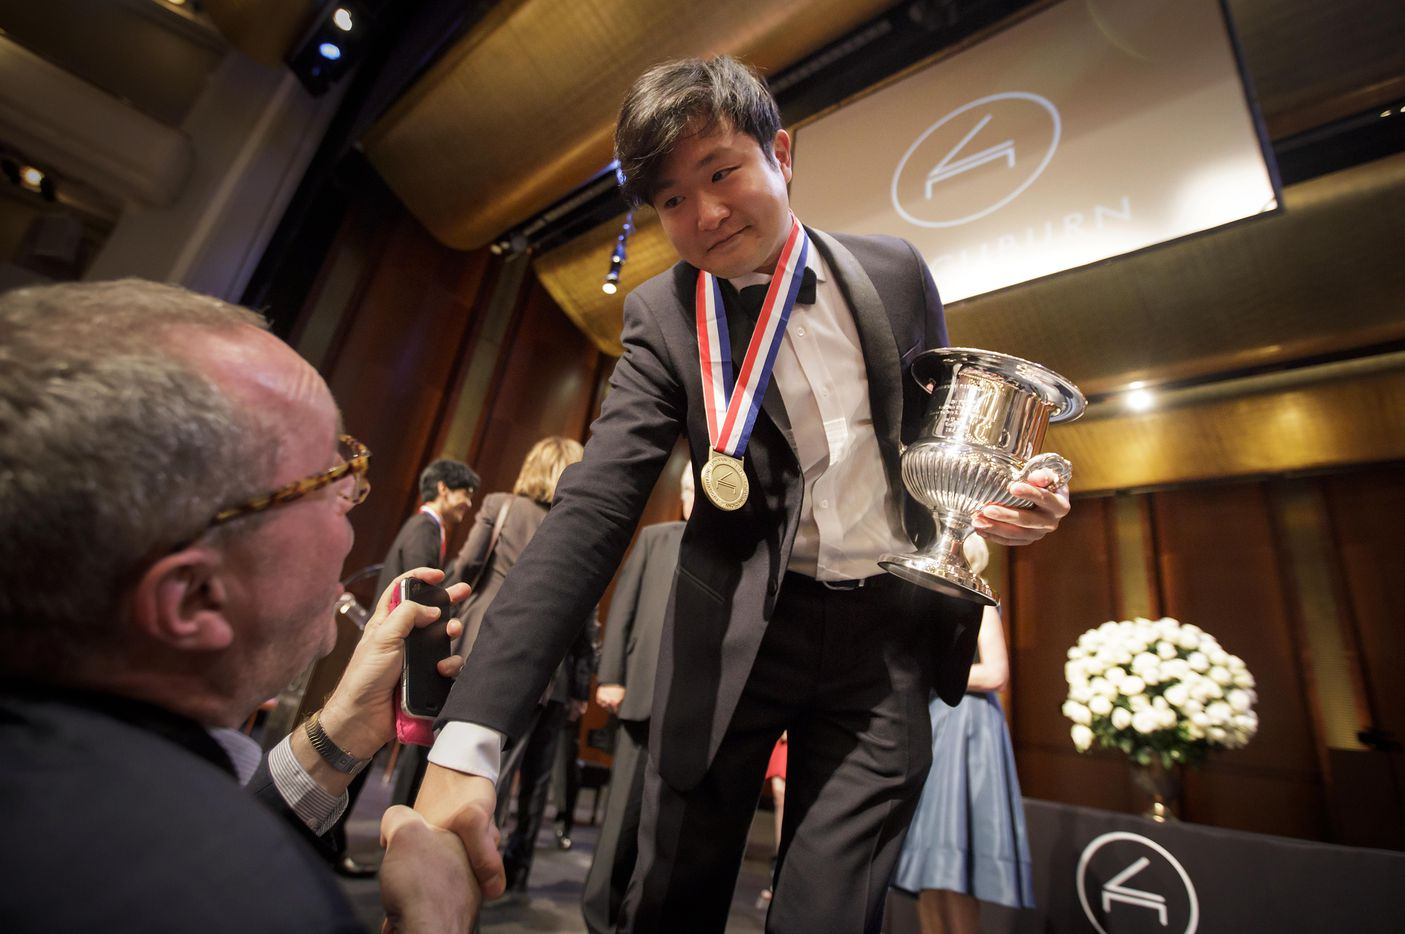 Gold medalist Yekwon Sunwoo of South Korea was congratulated after the Van Cliburn International Piano Competition awards ceremony at Bass Performance Hall in Fort Worth on Saturday. (Smiley N. Pool/Staff Photographer)